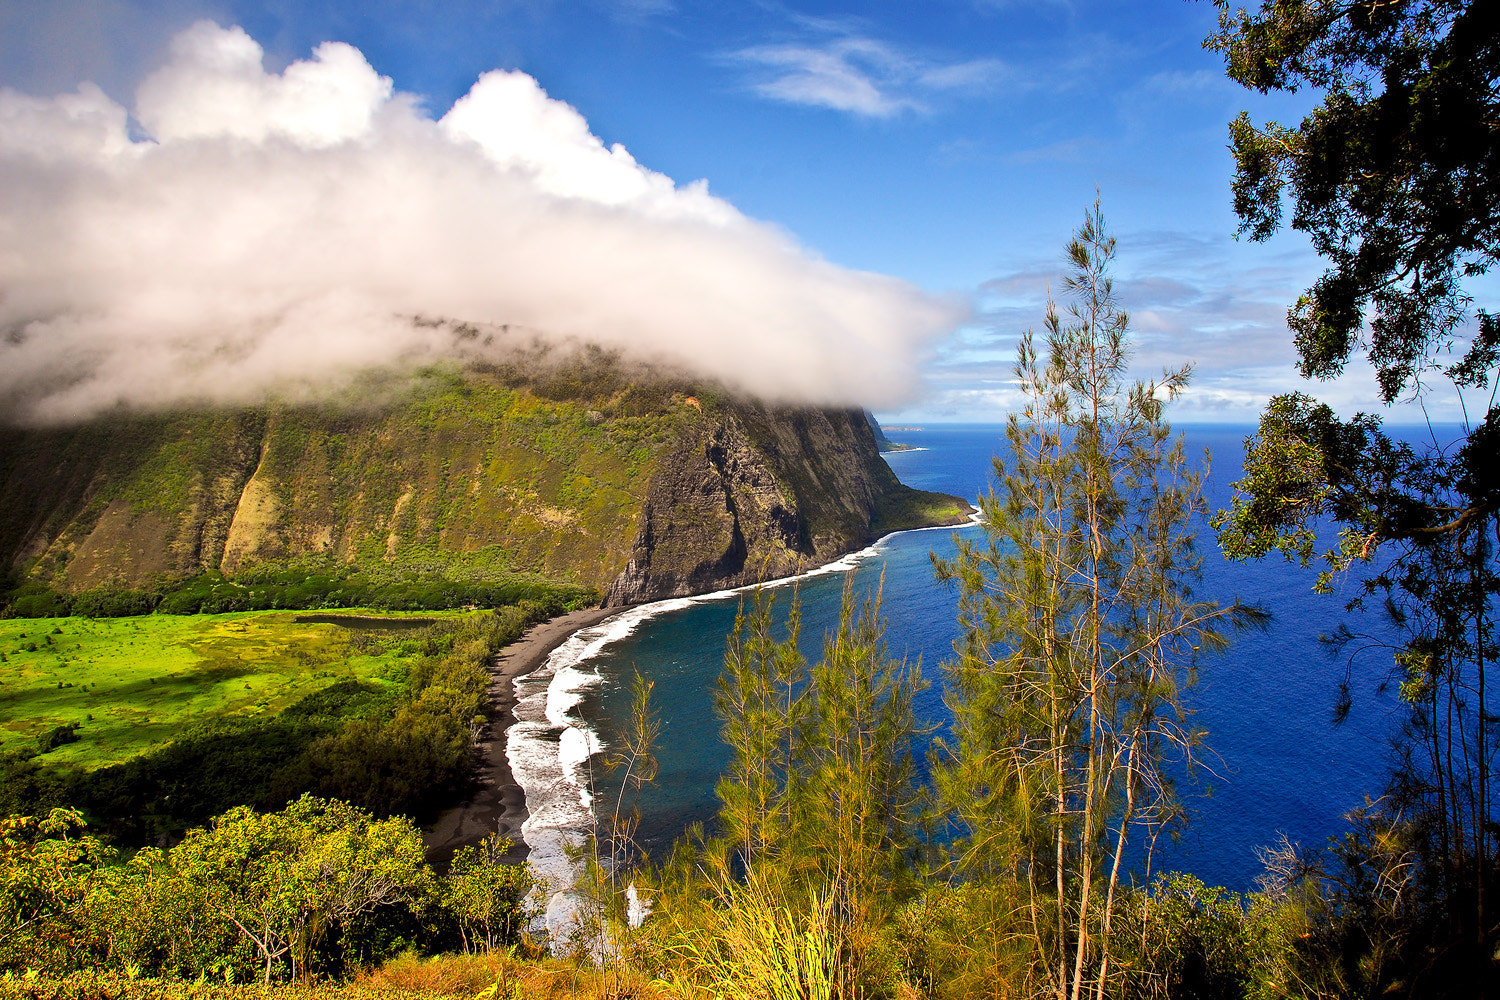 Photograph Waipio Valley by Mark Rogers on 500px